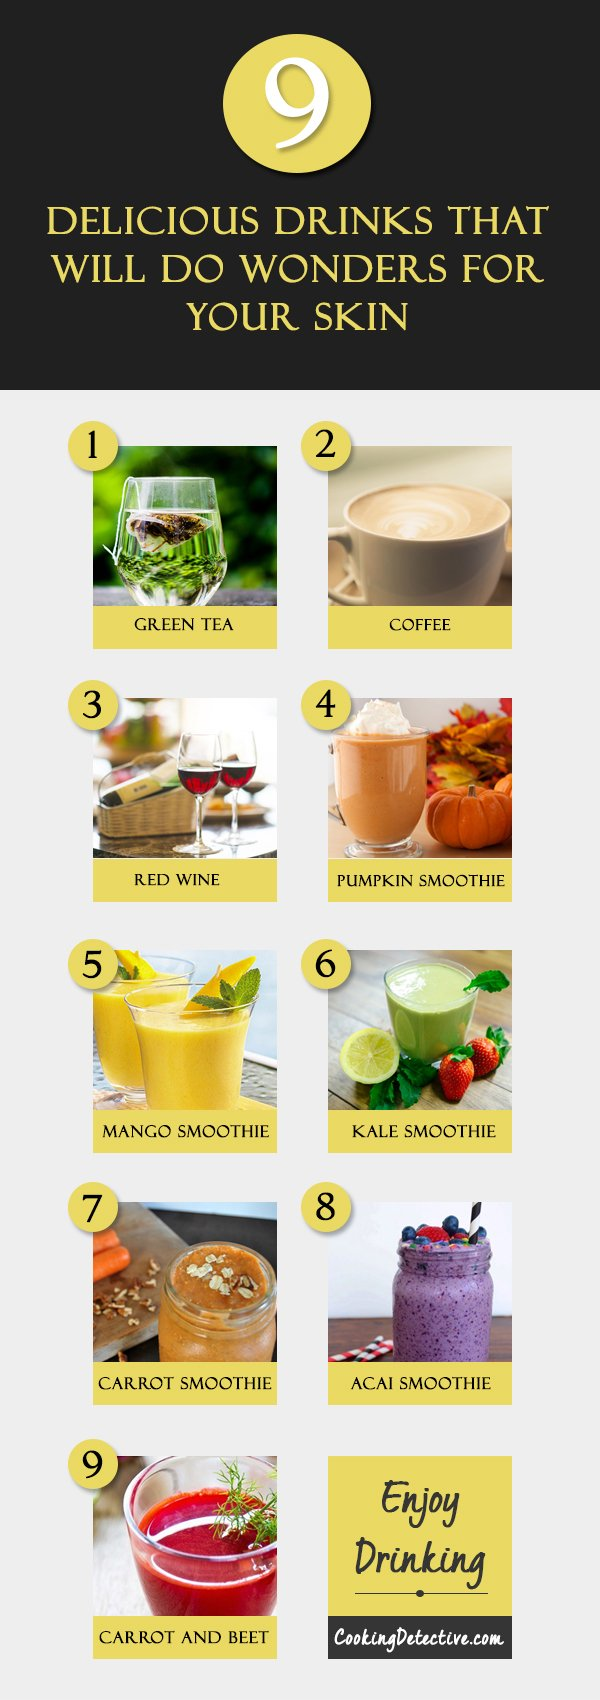 delicious-drink-wonders-for-skin